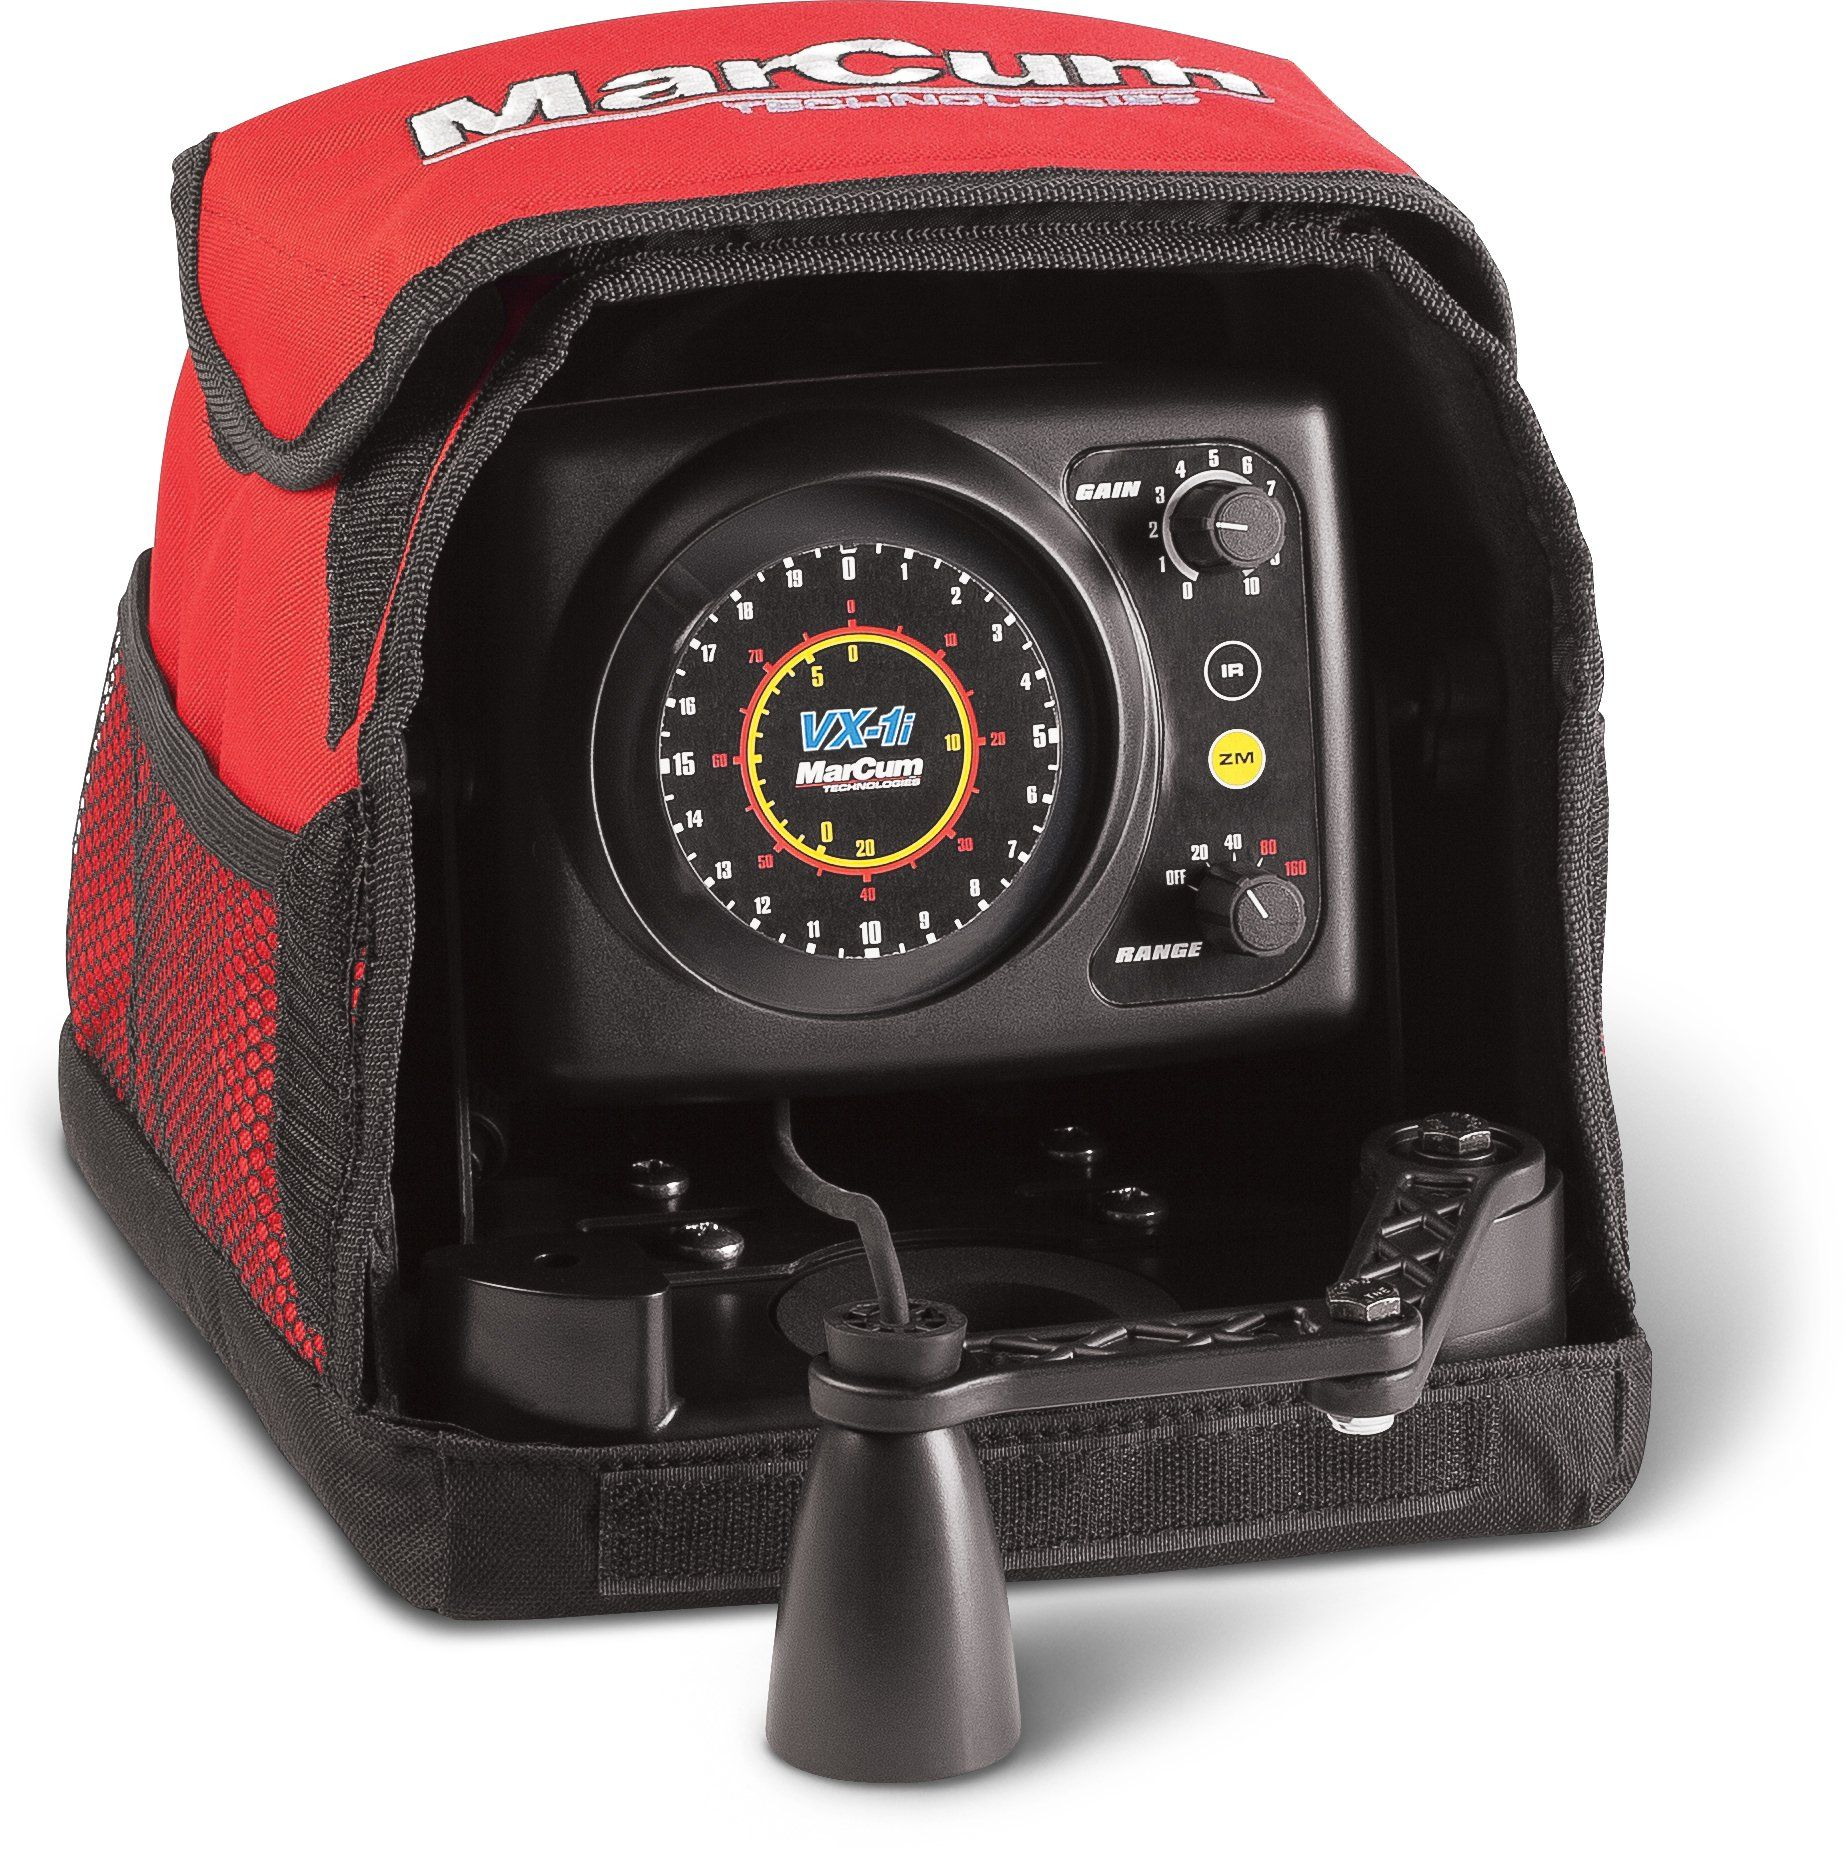 Marcum Vx-1i Sonar Flasher System Red Black Marine Electronics